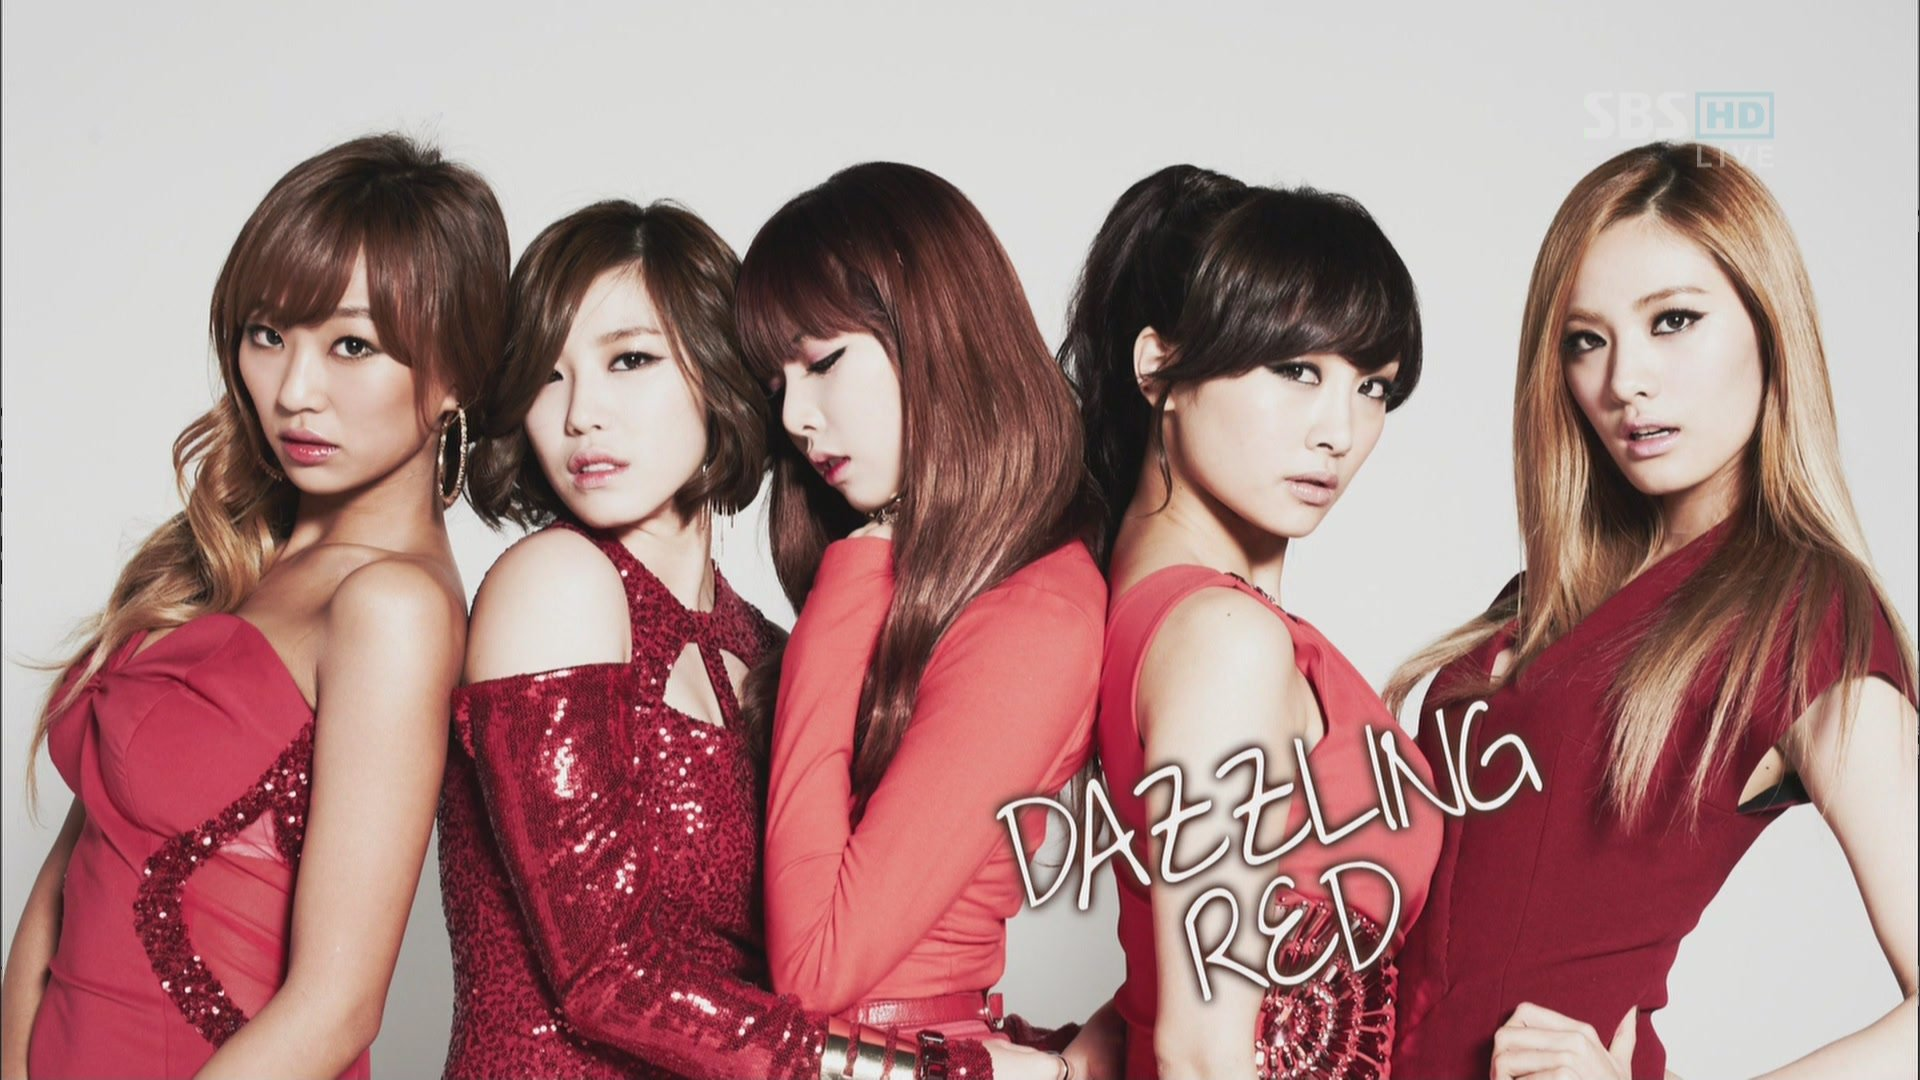 Sistar wallpaper 5 - 4minute Profile Kpop Music